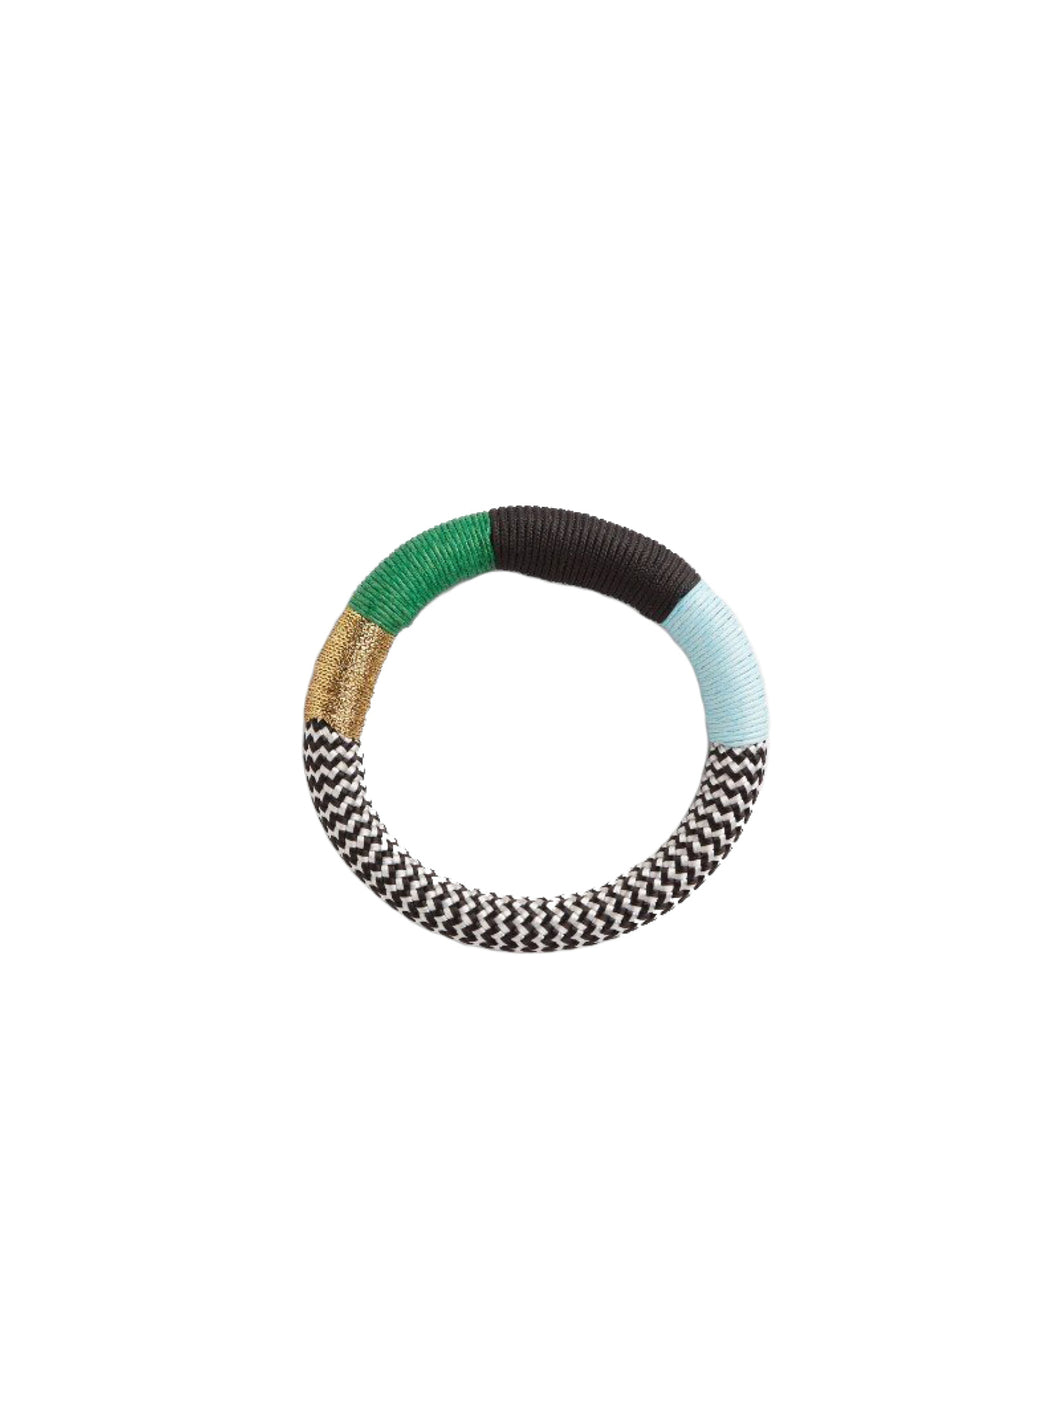 Dynamic Ndebele Armband // Pichulik // mehrfarbig - bellafrique